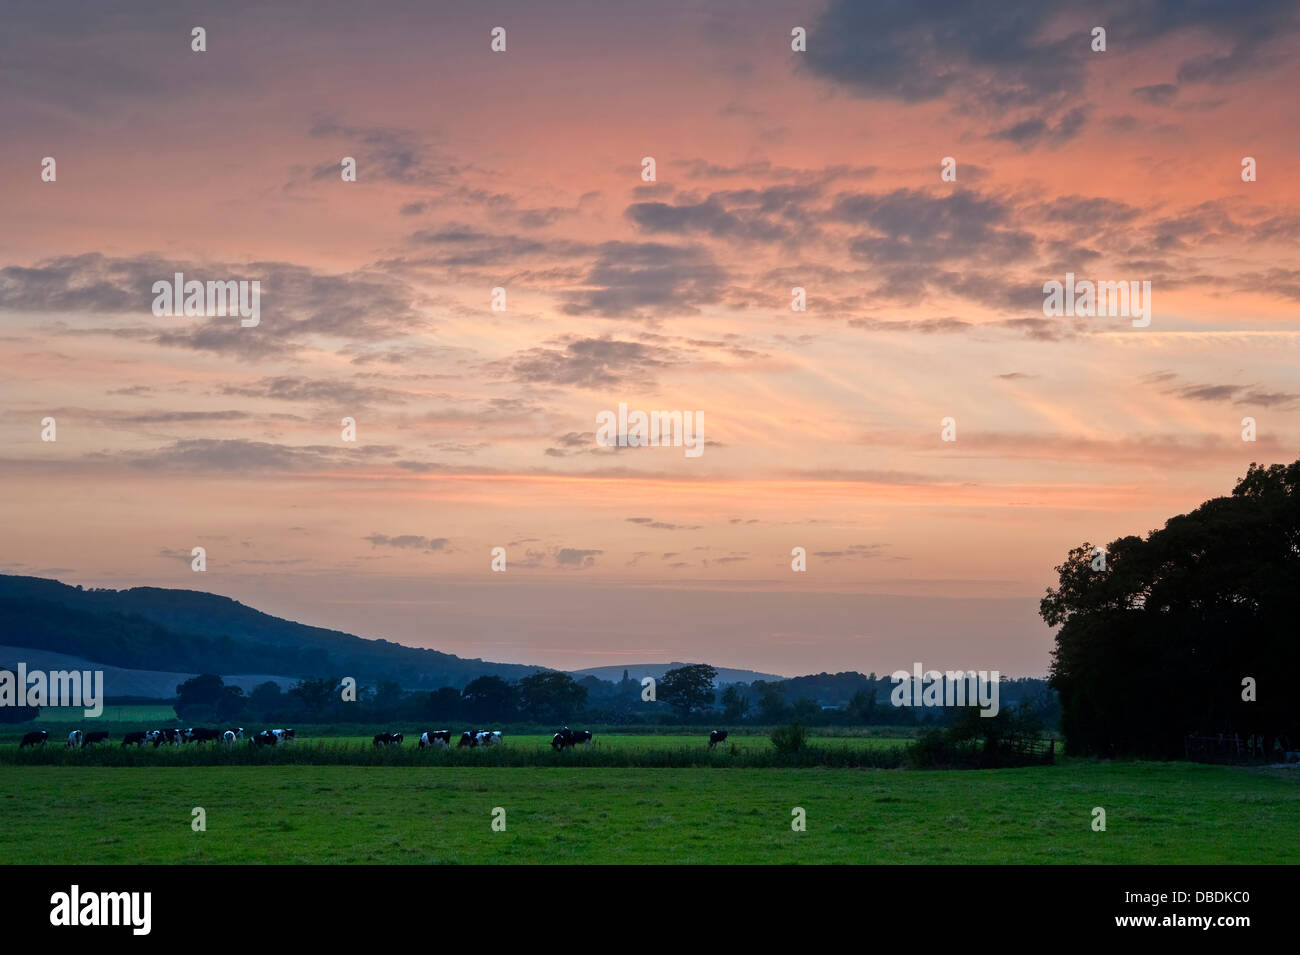 Lovely image through cow field into vibrant sunset English countryside landscape - Stock Image